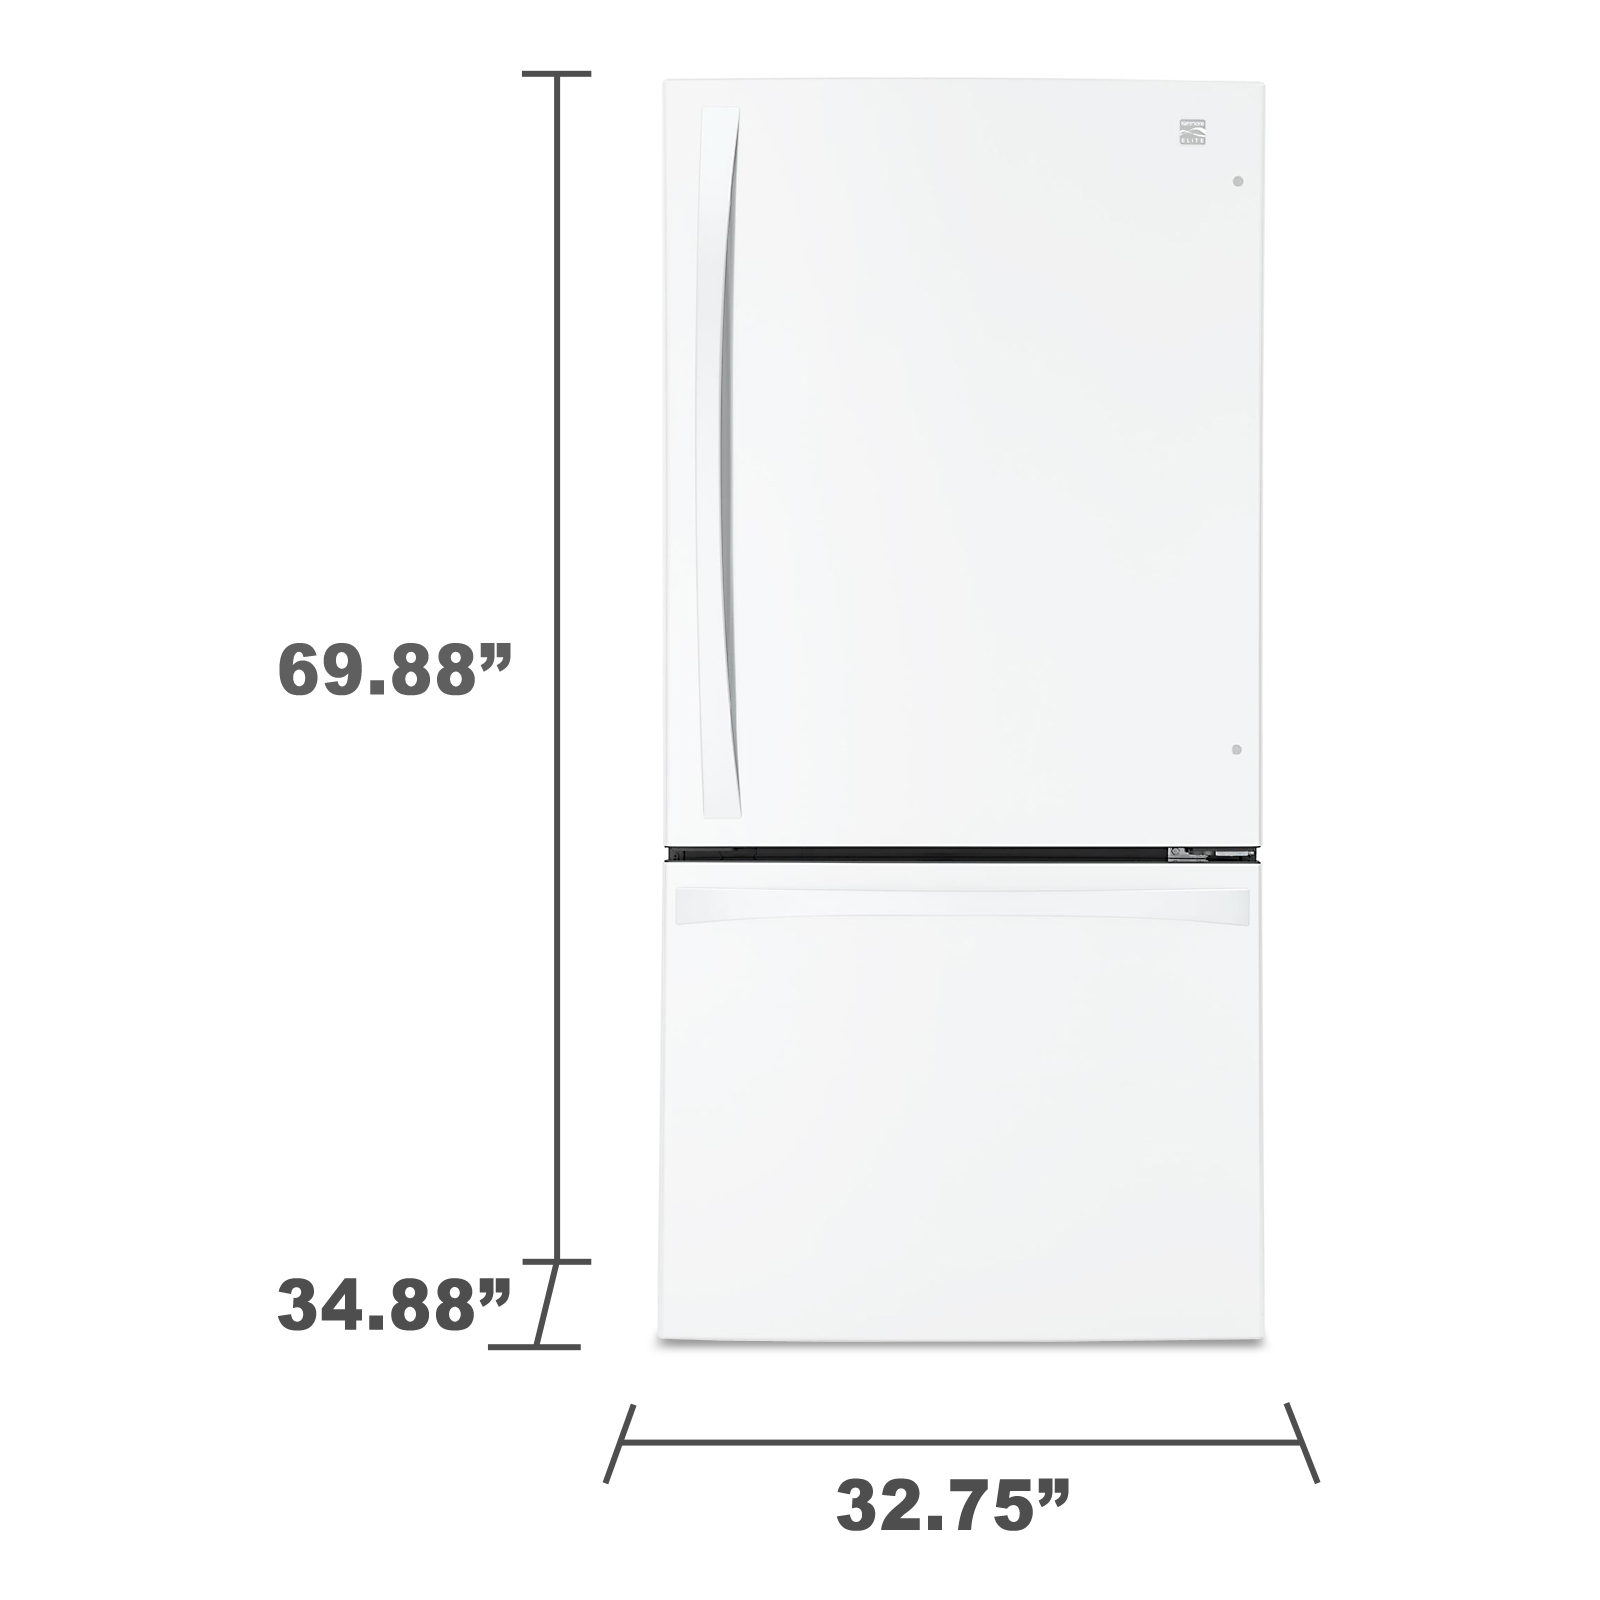 Kenmore Elite 79042 24.1 cu. ft. Bottom-Freezer Refrigerator - White